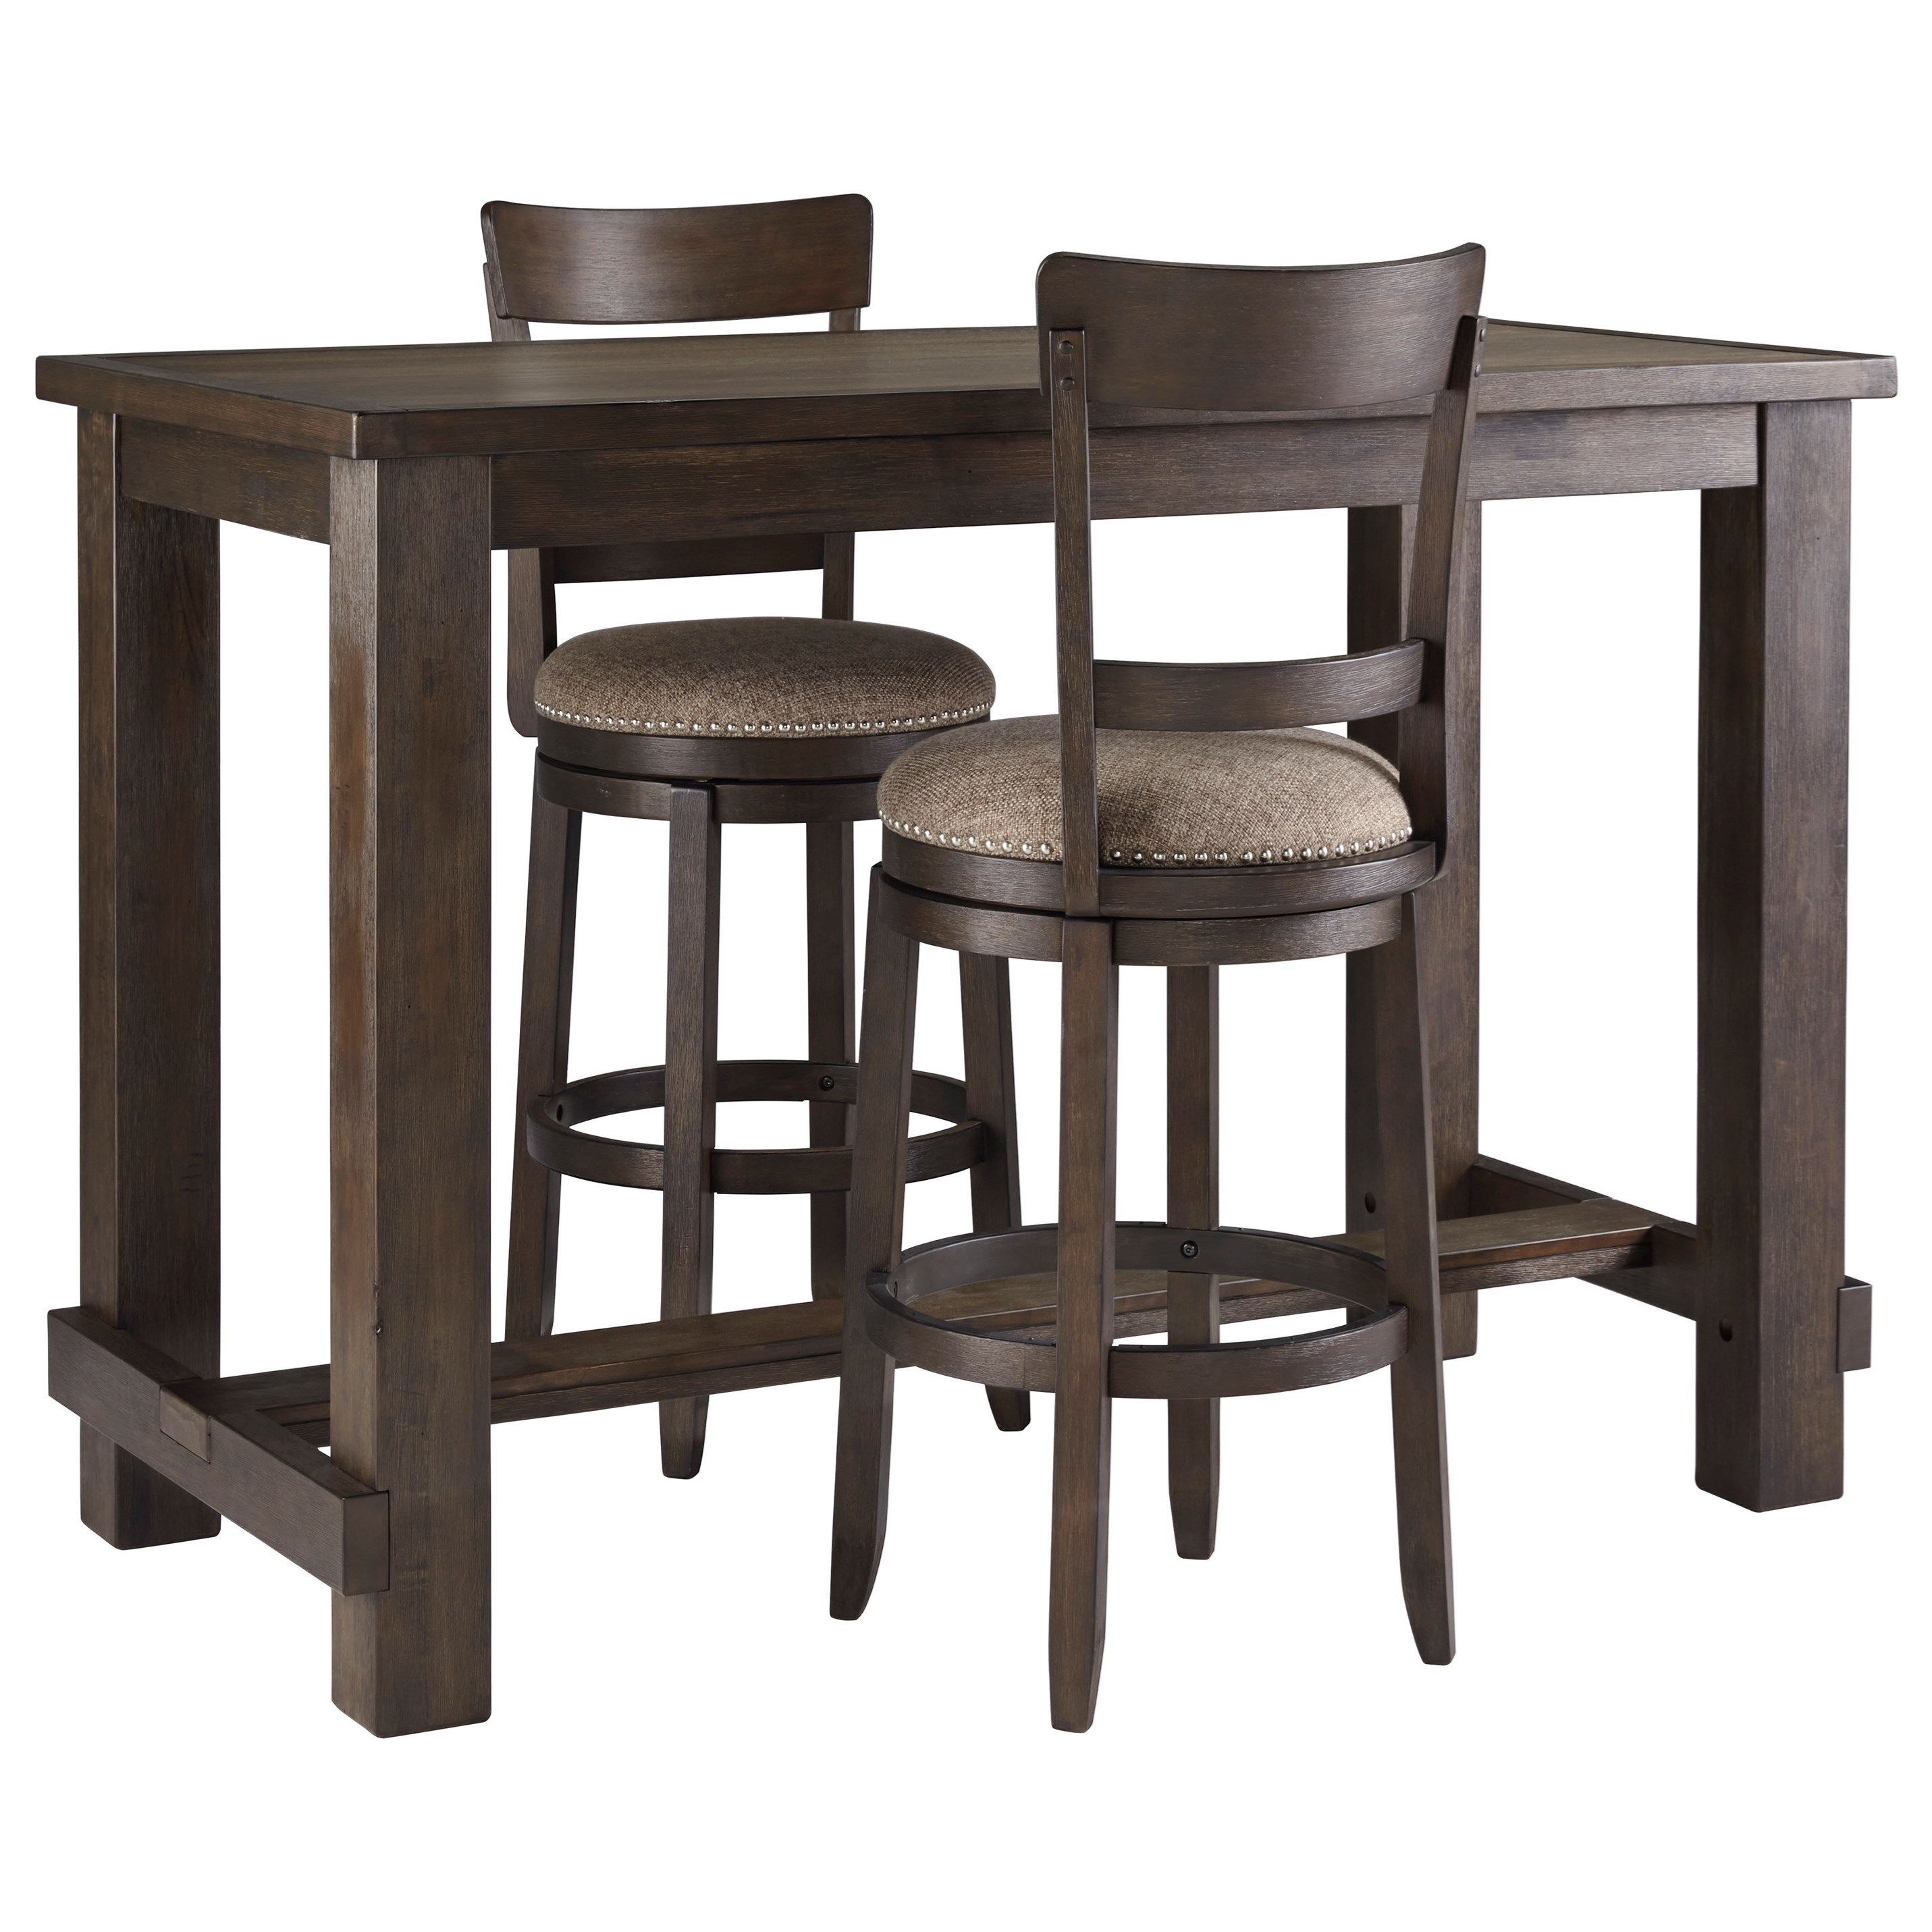 Drewing Three Piece Pub Table & Chair Set by Ashley (Signature Design) at Johnny Janosik